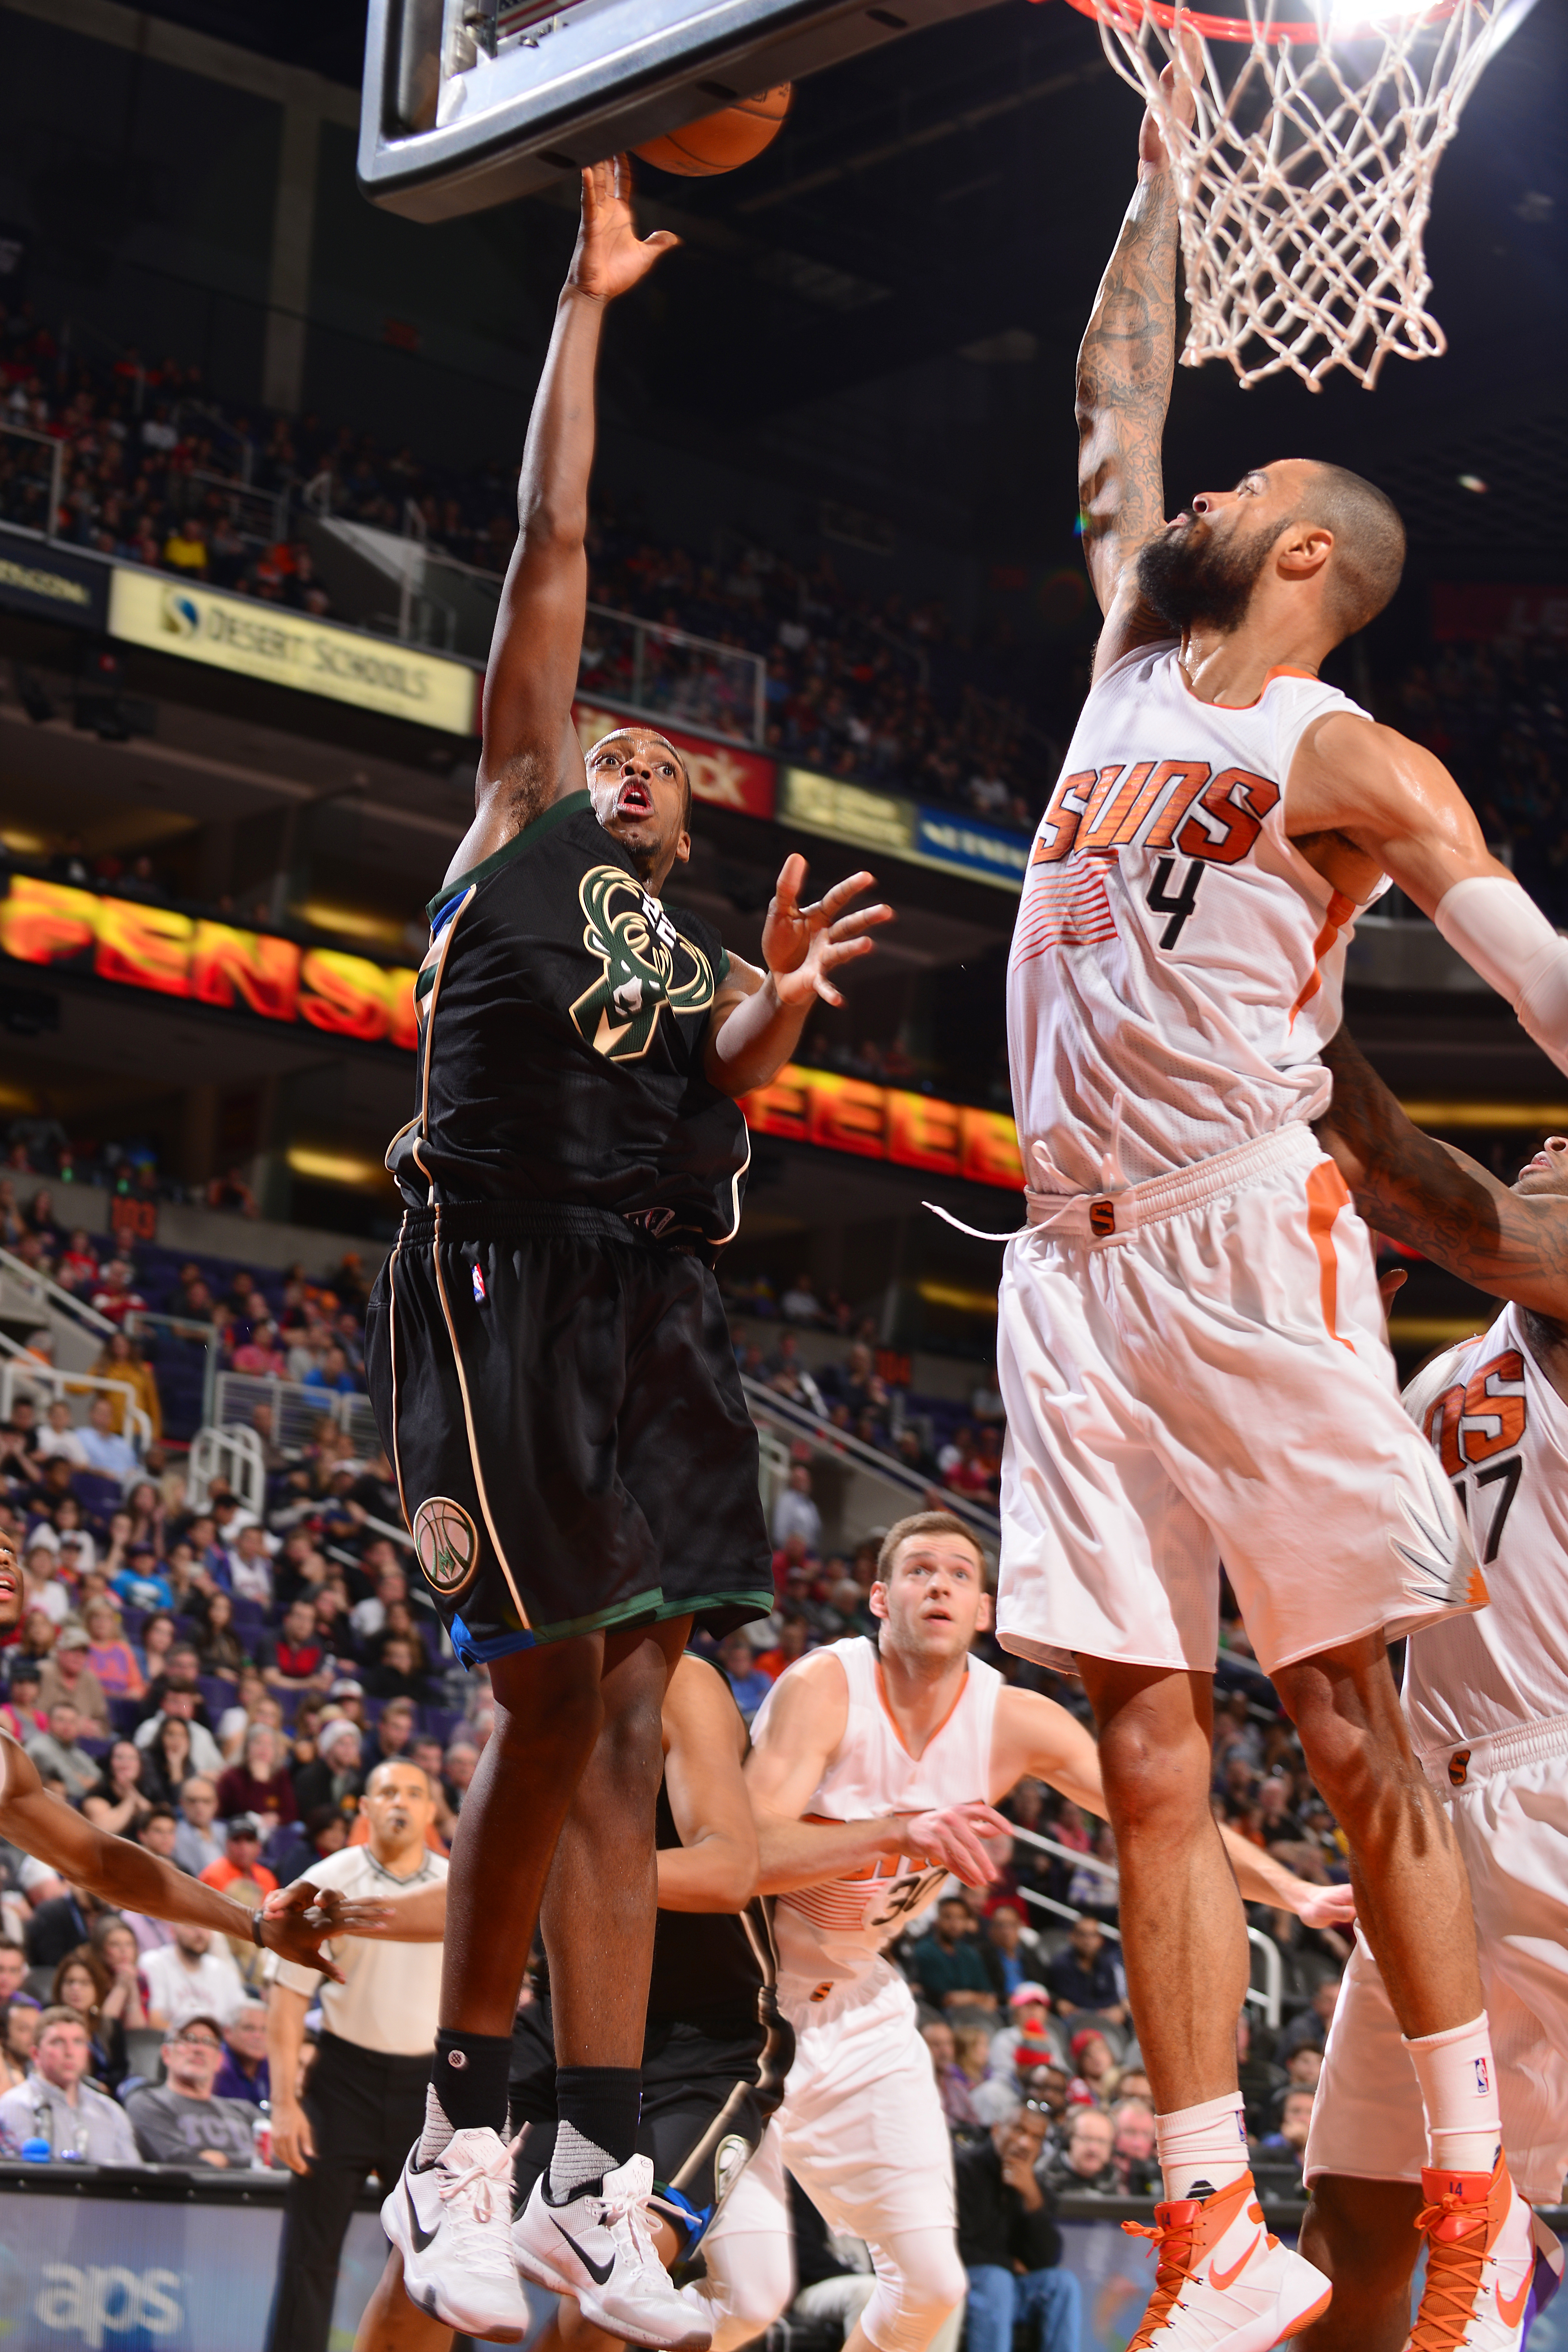 PHOENIX, AZ - DECEMBER 20: Khris Middleton #22 of the Milwaukee Bucks shoots the ball during the game against the Phoenix Suns on December 20, 2015 at U.S. Airways Center in Phoenix, Arizona. (Photo by Barry Gossage/NBAE via Getty Images)